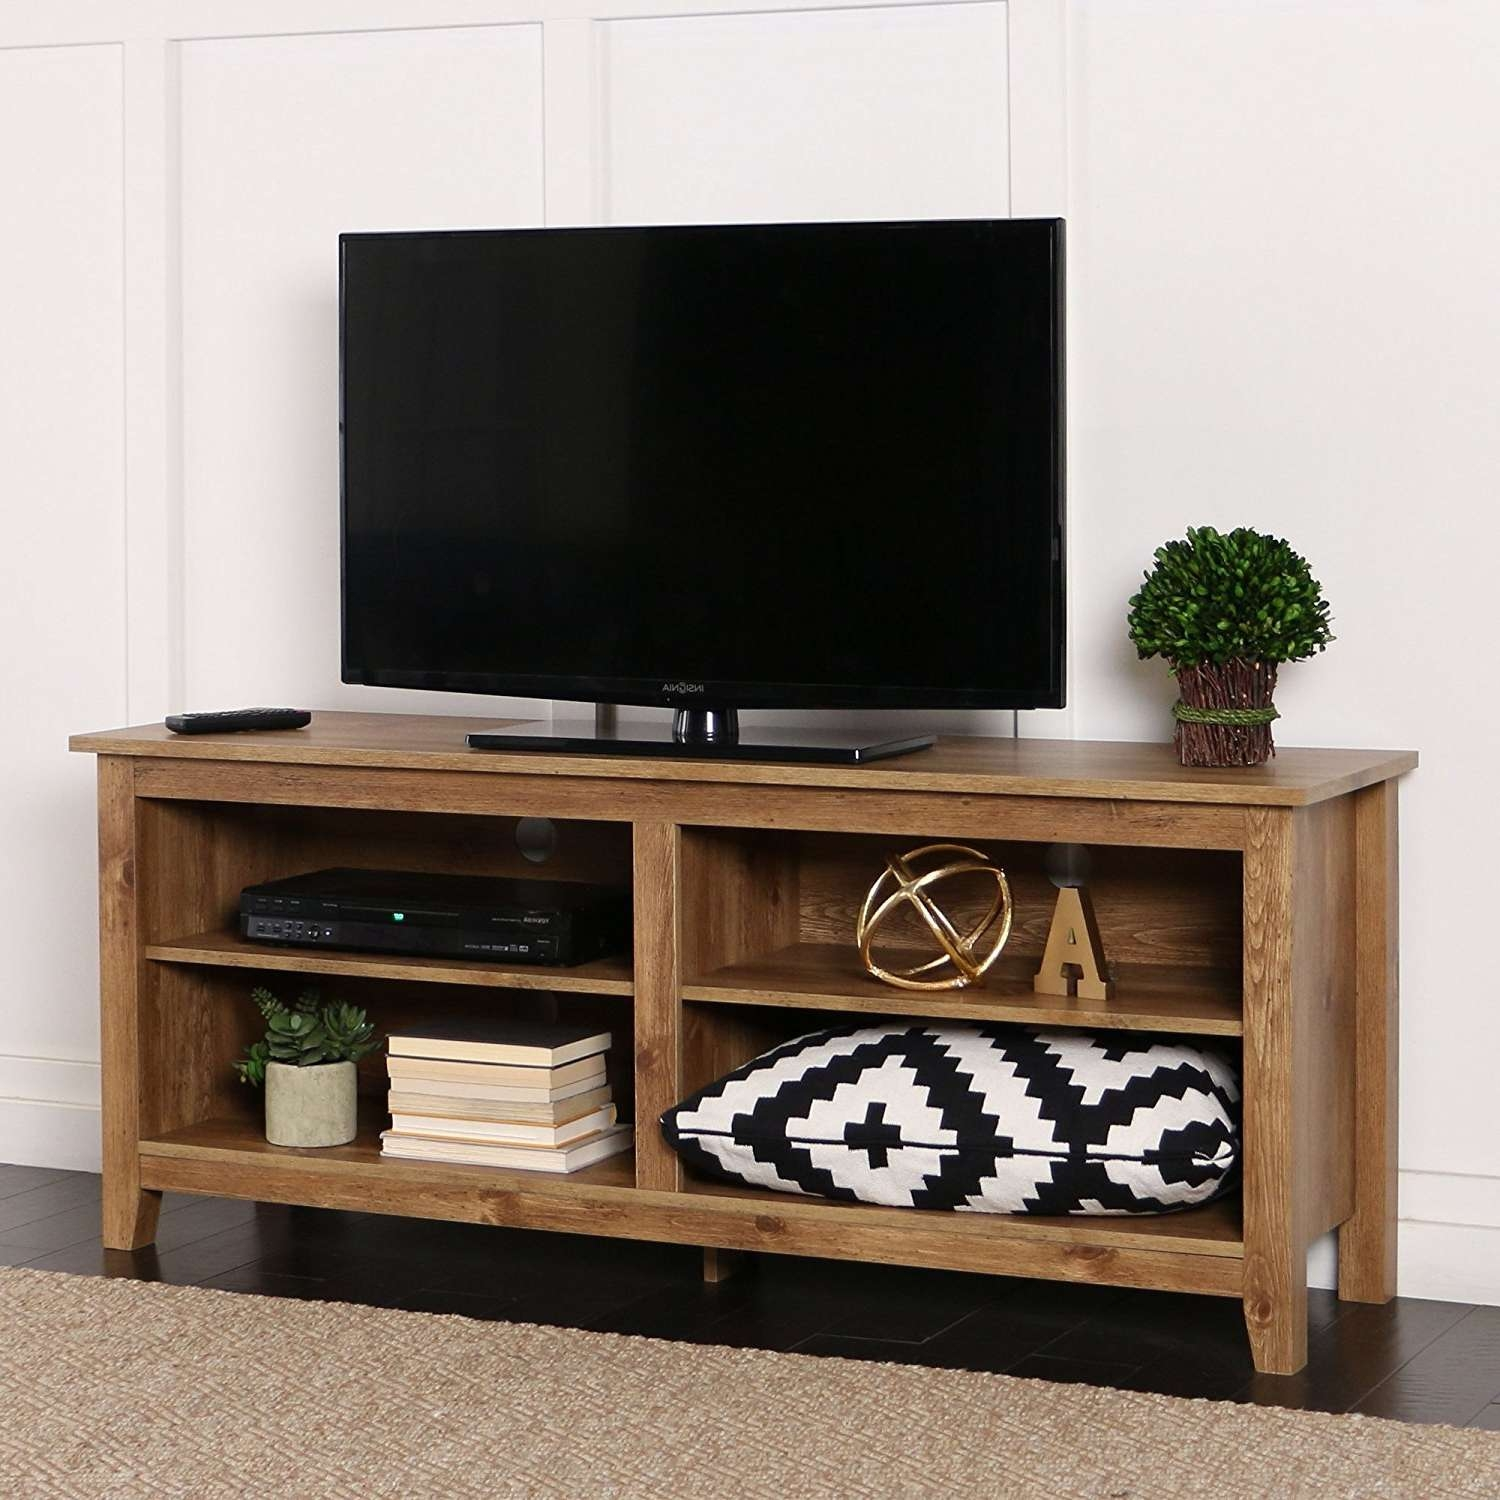 Furniture: Corner Tv Stands For 55 Inch Tv | Tv Stands For Flat Within Corner Tv Stands For 55 Inch Tv (View 6 of 15)